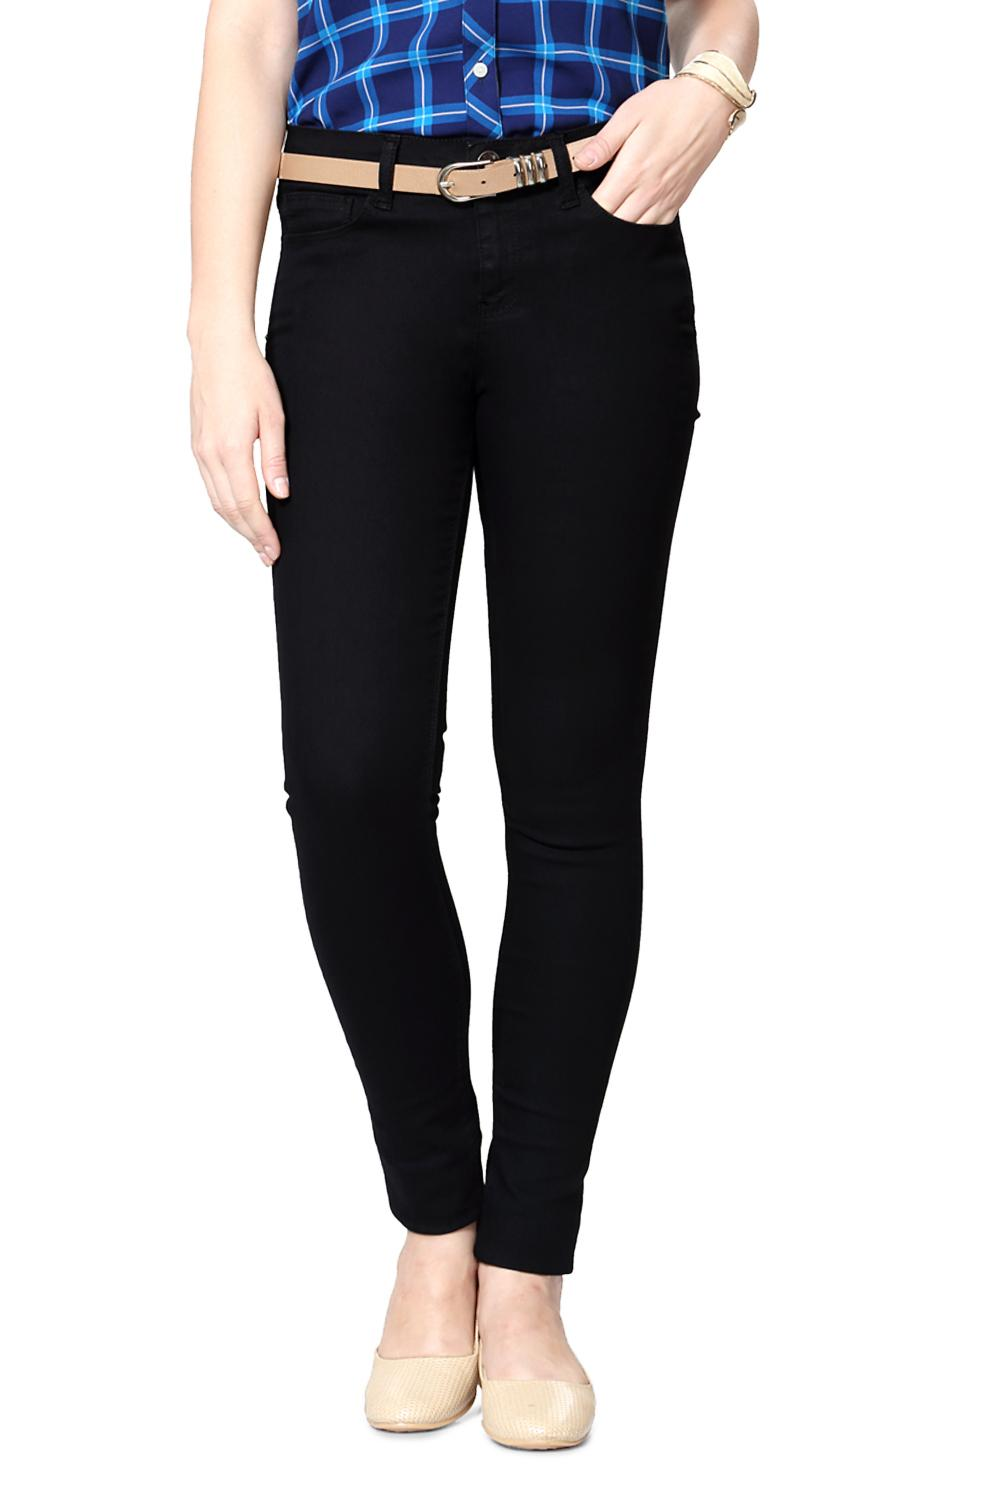 269e907065ff Solly Jeans & Jeggings, Allen Solly Black Jeans for Women at Allensolly.com